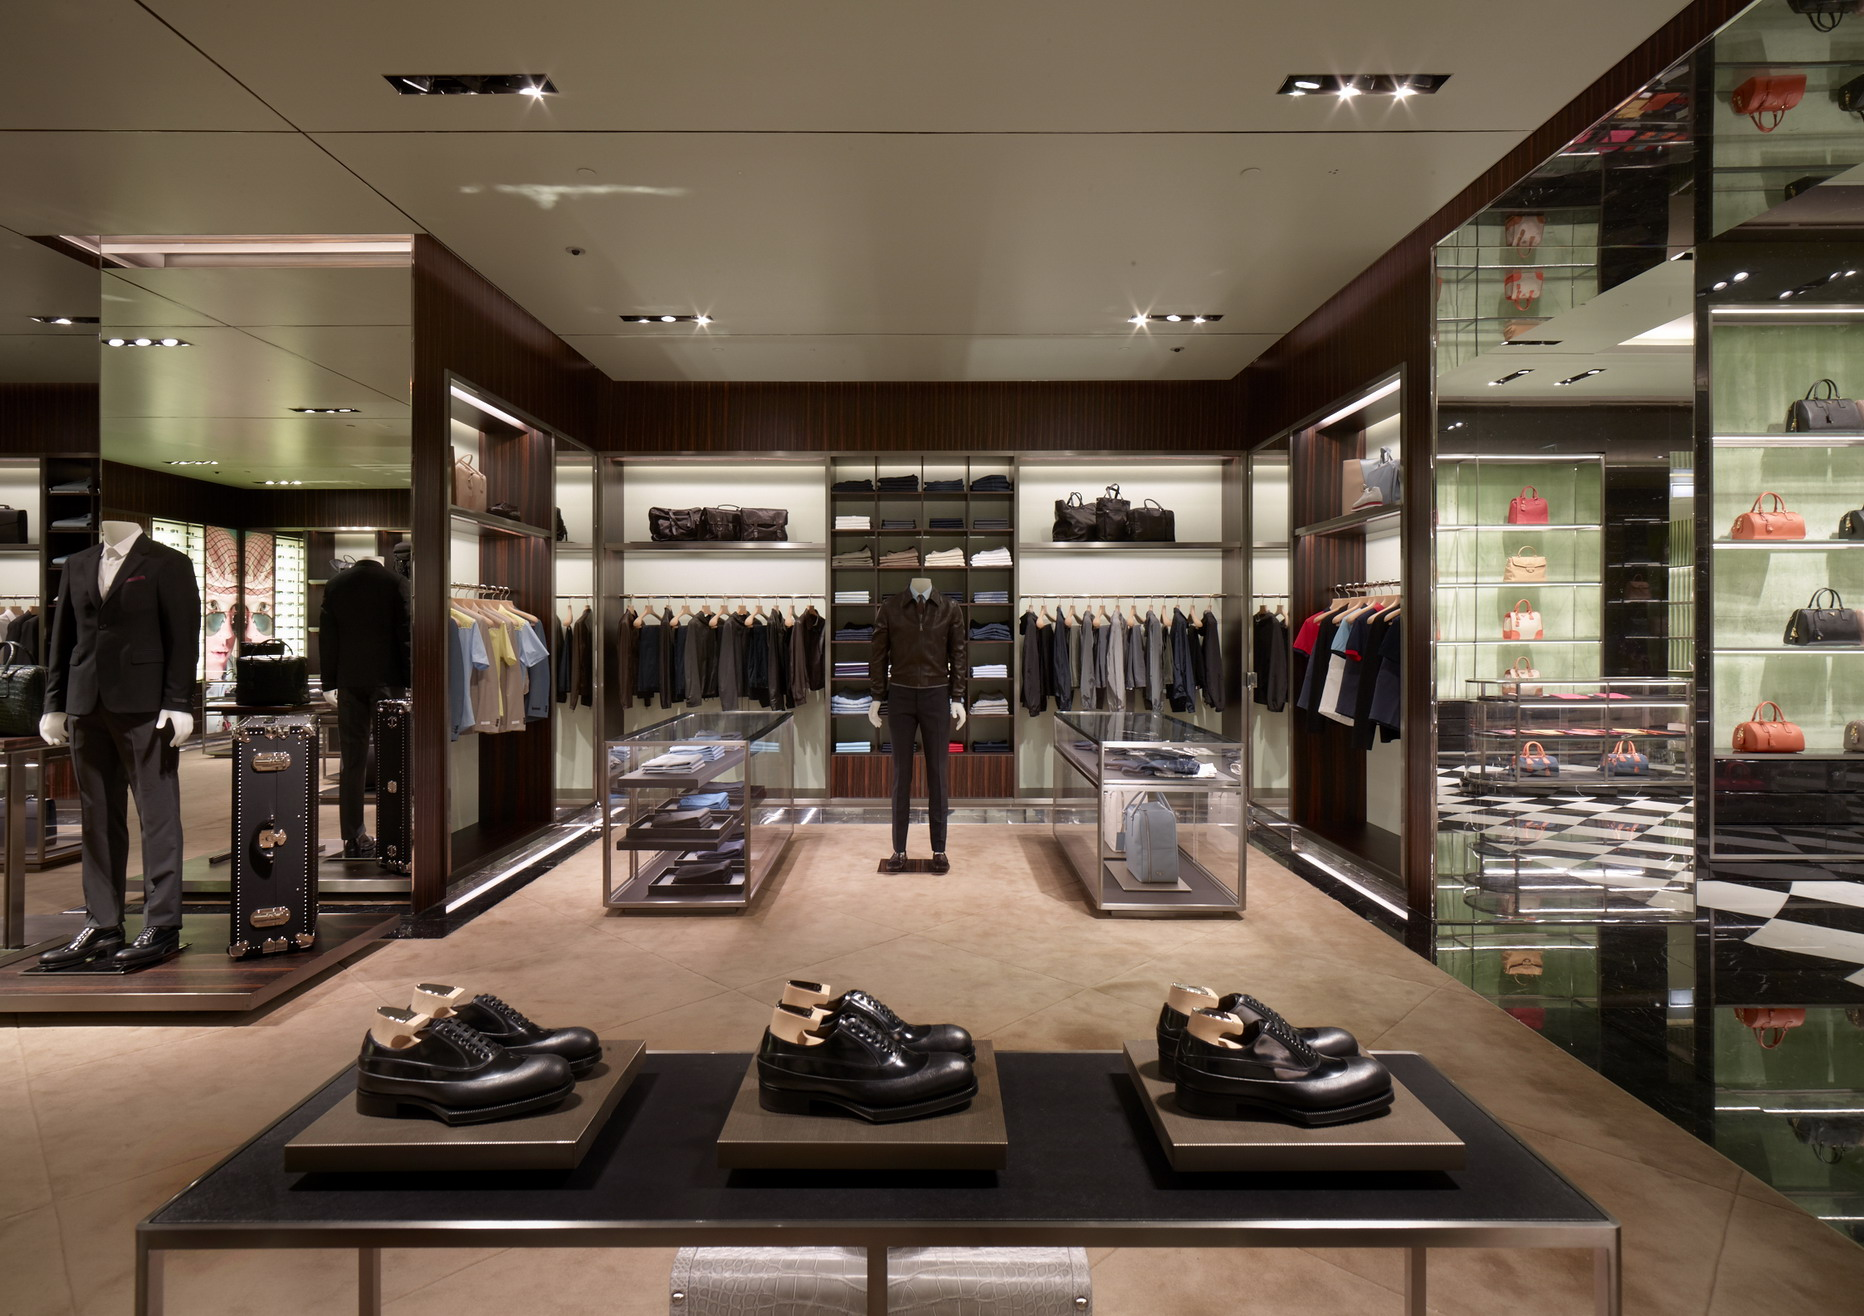 Nuovo store prada a dubai luuk magazine - Men s clothing store interior design ideas ...